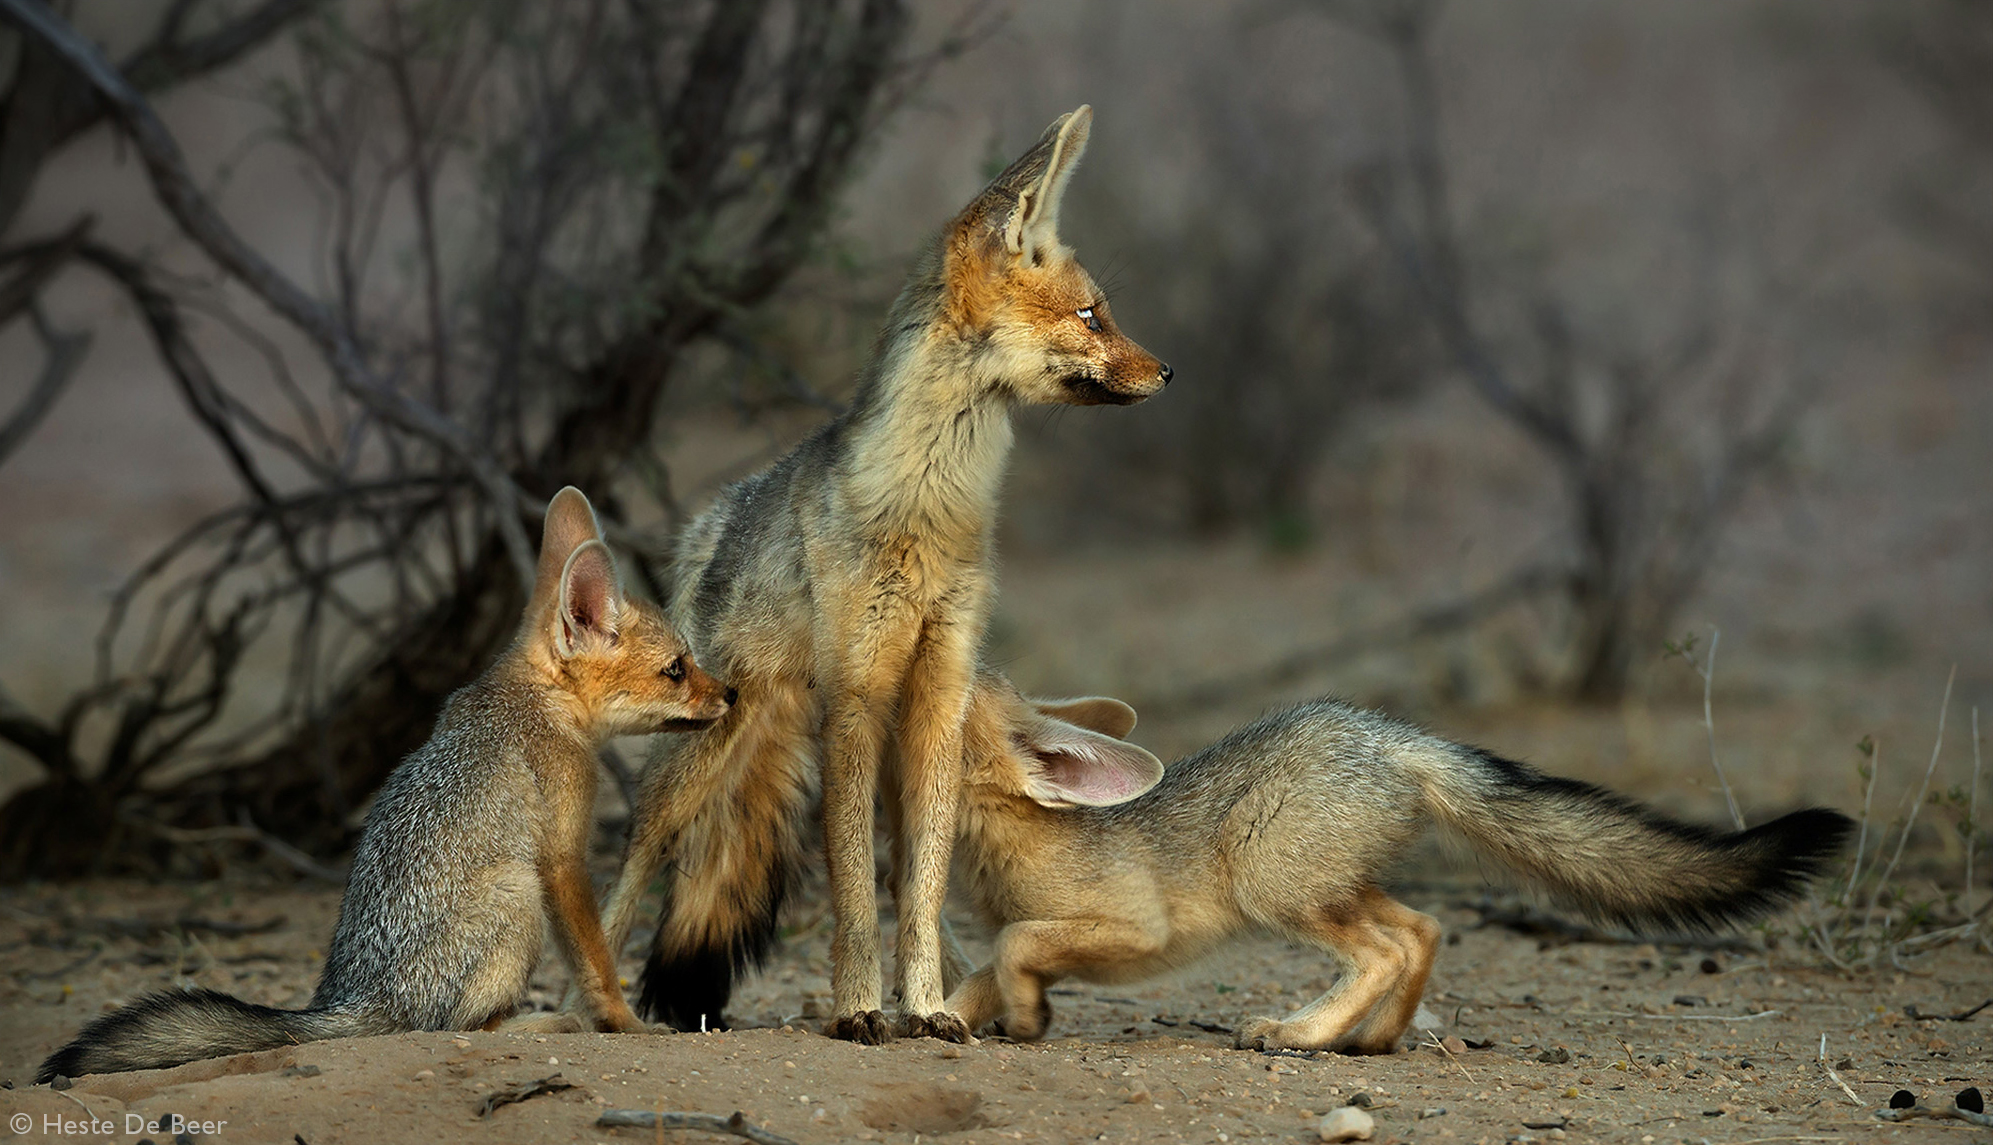 Two juvenile Cape foxes suckle on their mother in Kalahari Gemsbok National Park, South Africa